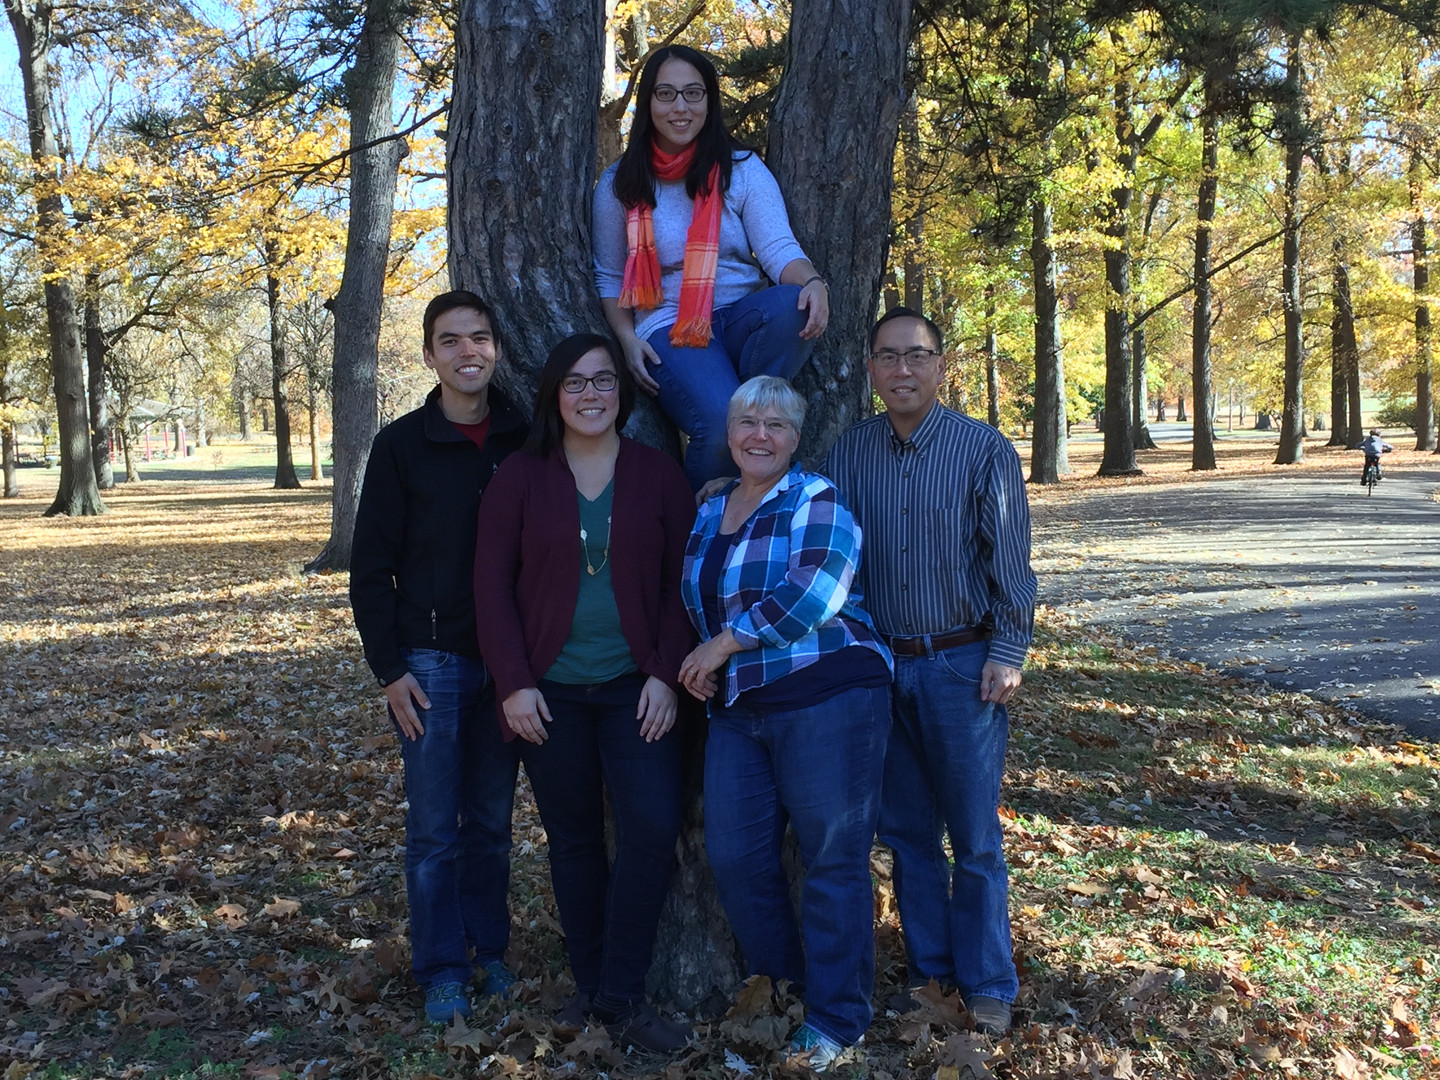 Visiting Robyn's family at Thanksgiving